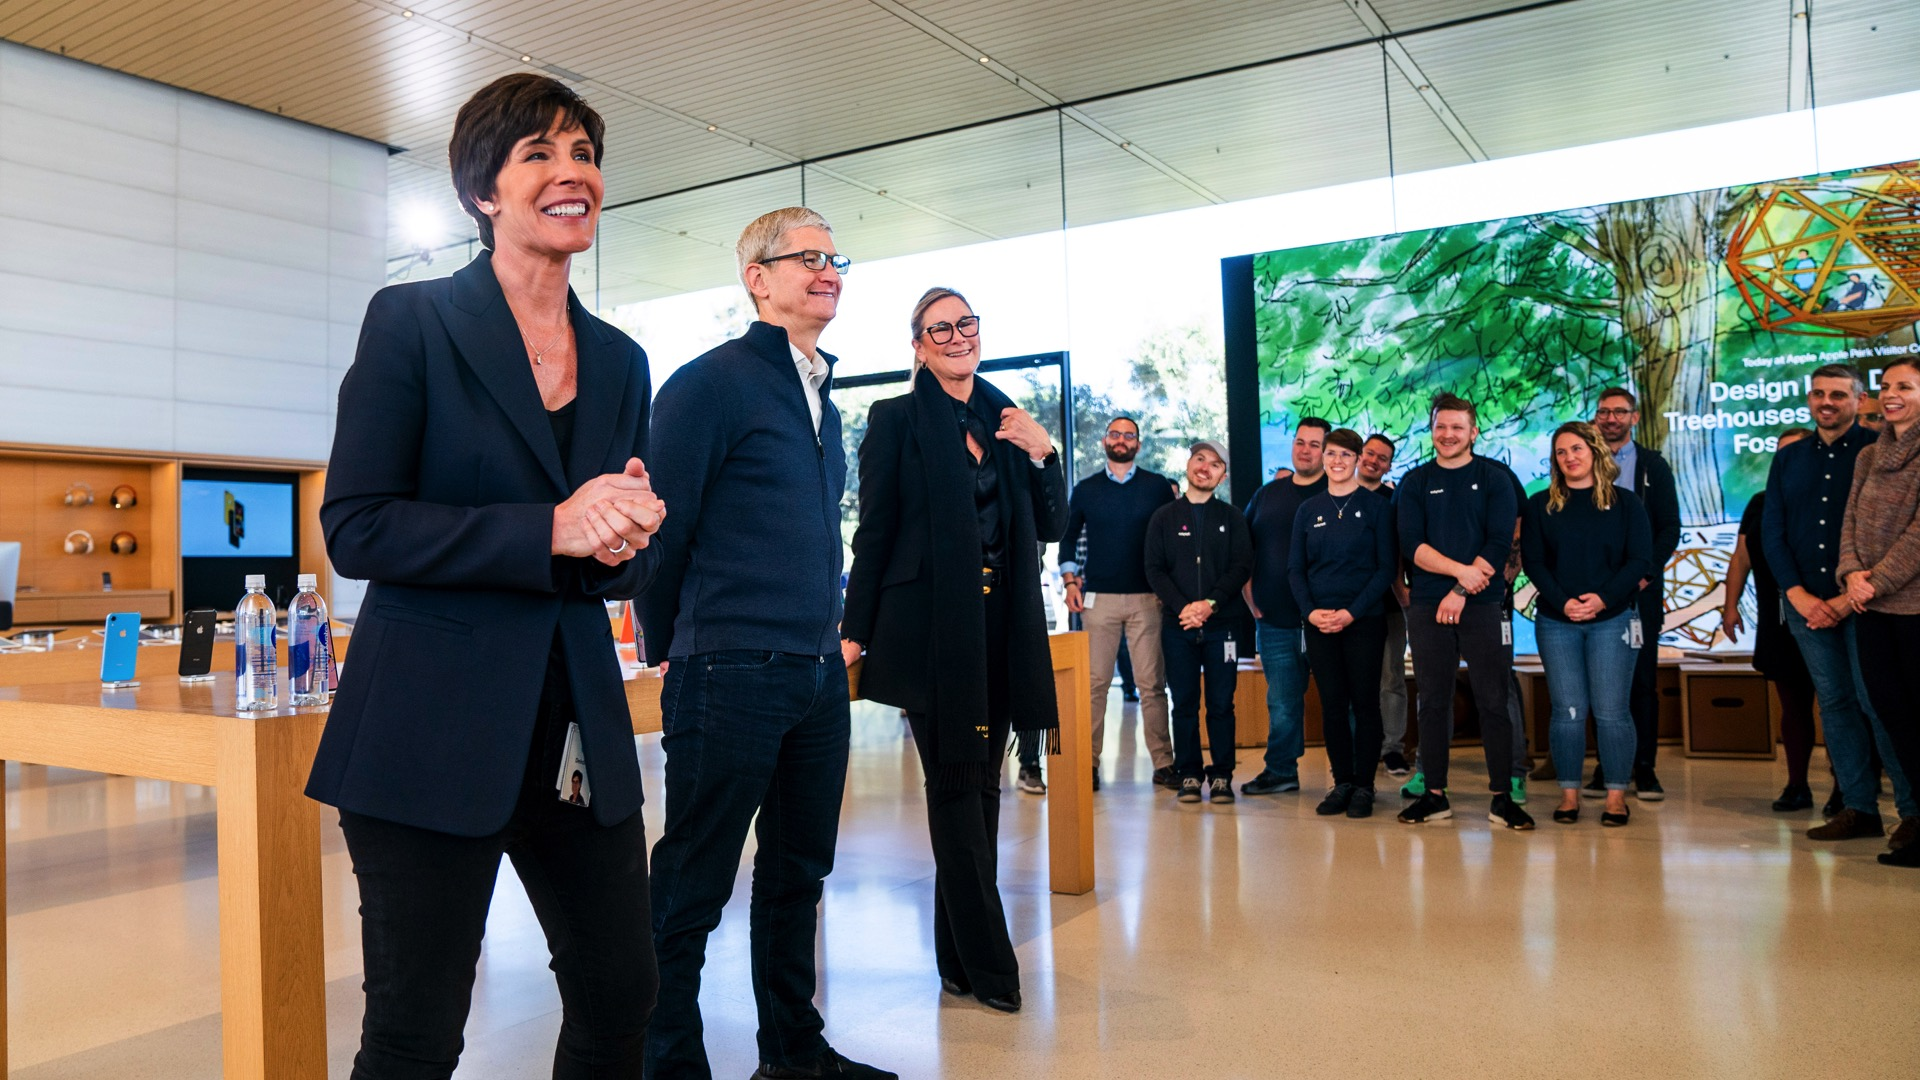 Making sense of Angela Ahrendts' departure and the future of Apple retail